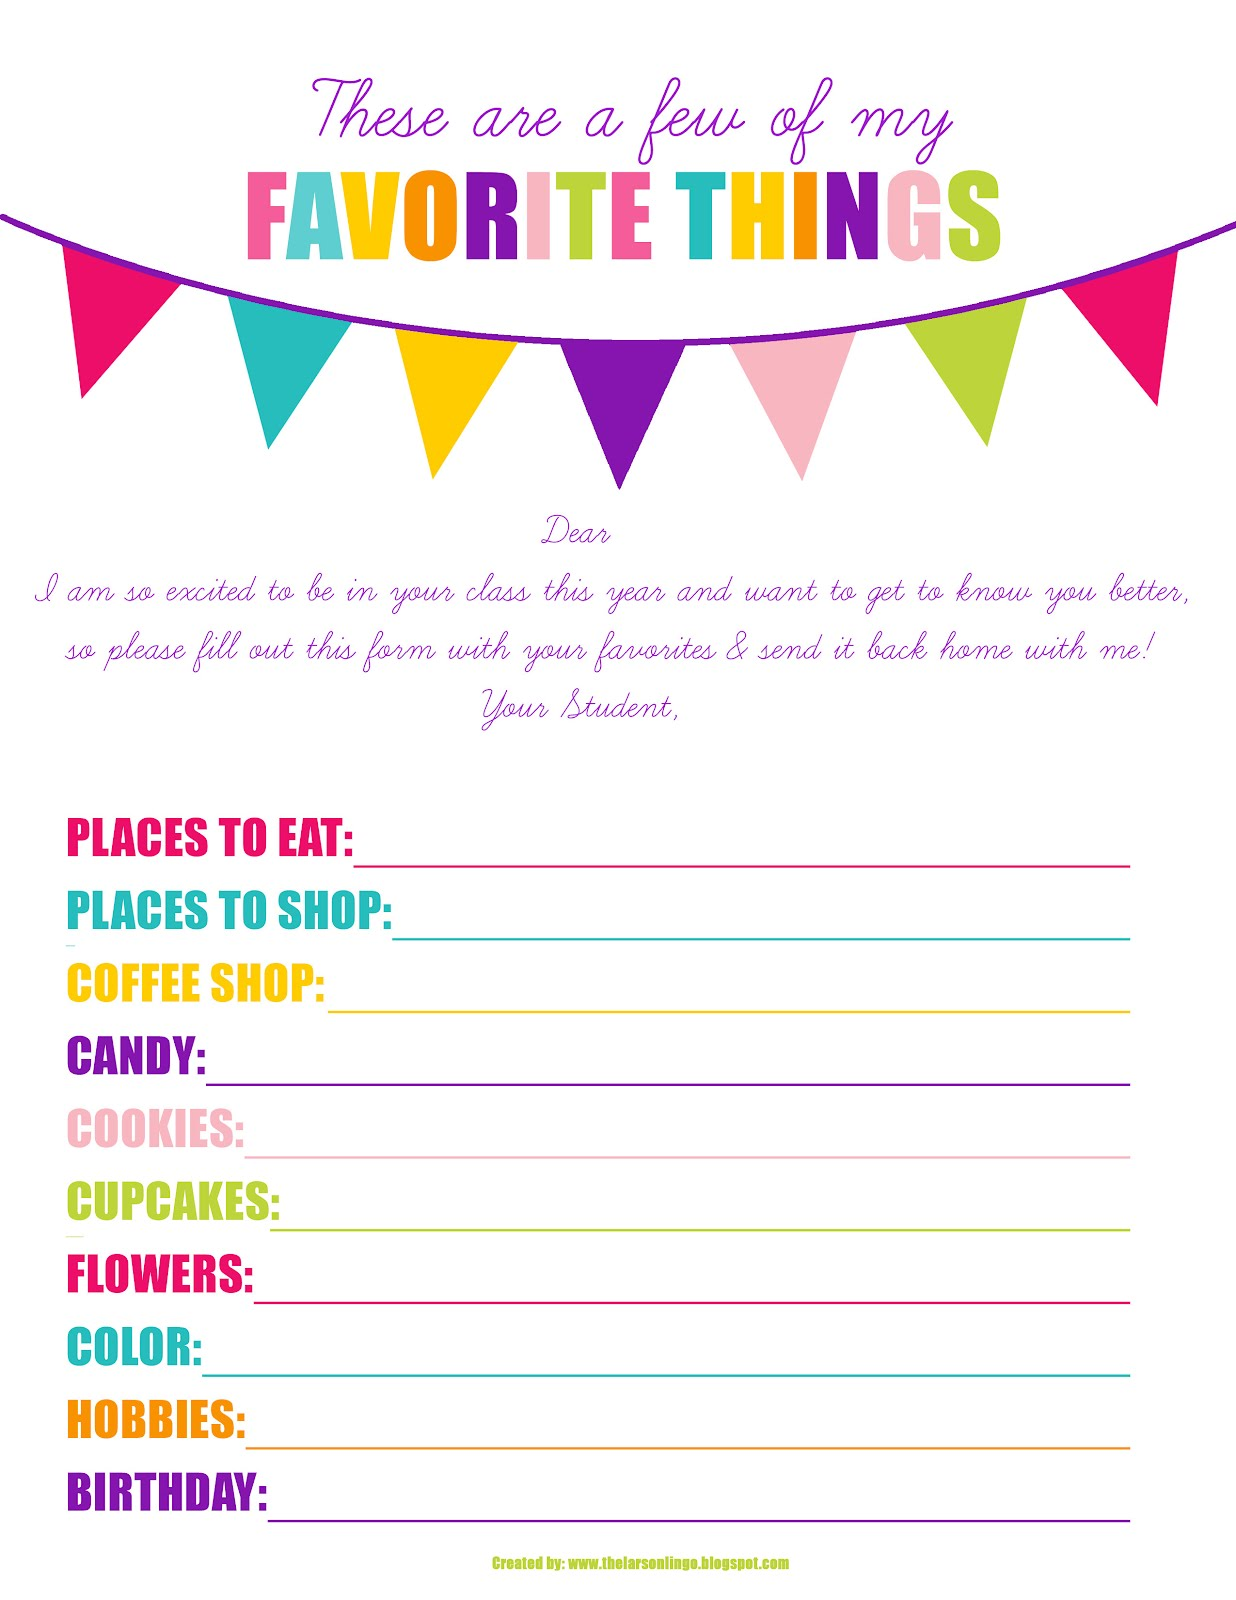 7 Images of Kindergarten Student Teachers From My Favorite Things Printable